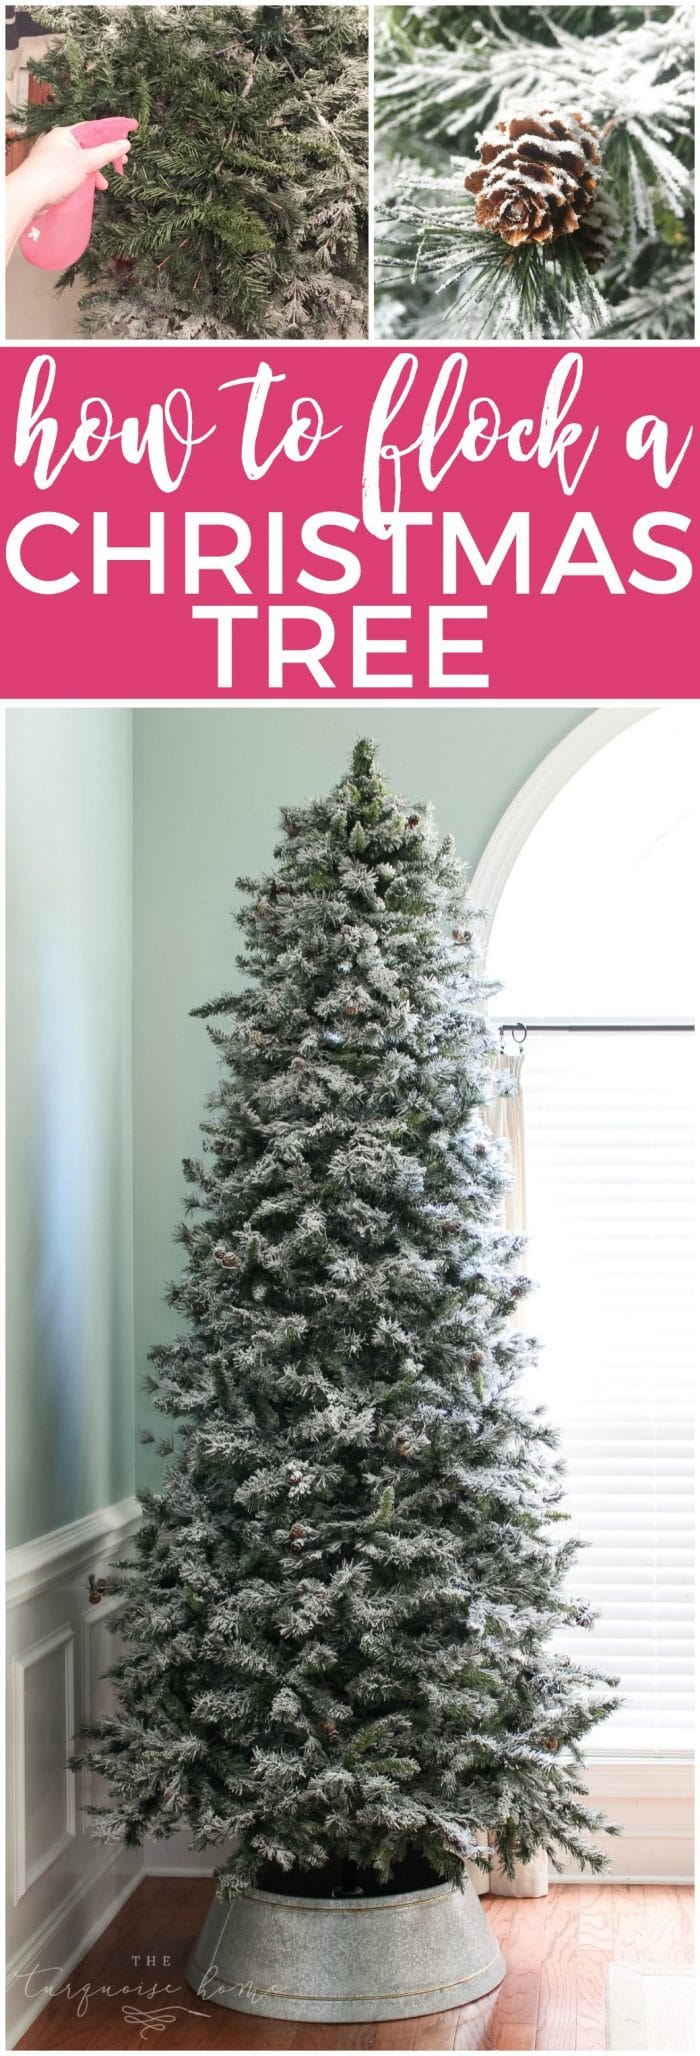 How to flock a christmas tree the turquoise home how to flock a christmas tree the easy way make your wintery tree dreams come solutioingenieria Image collections